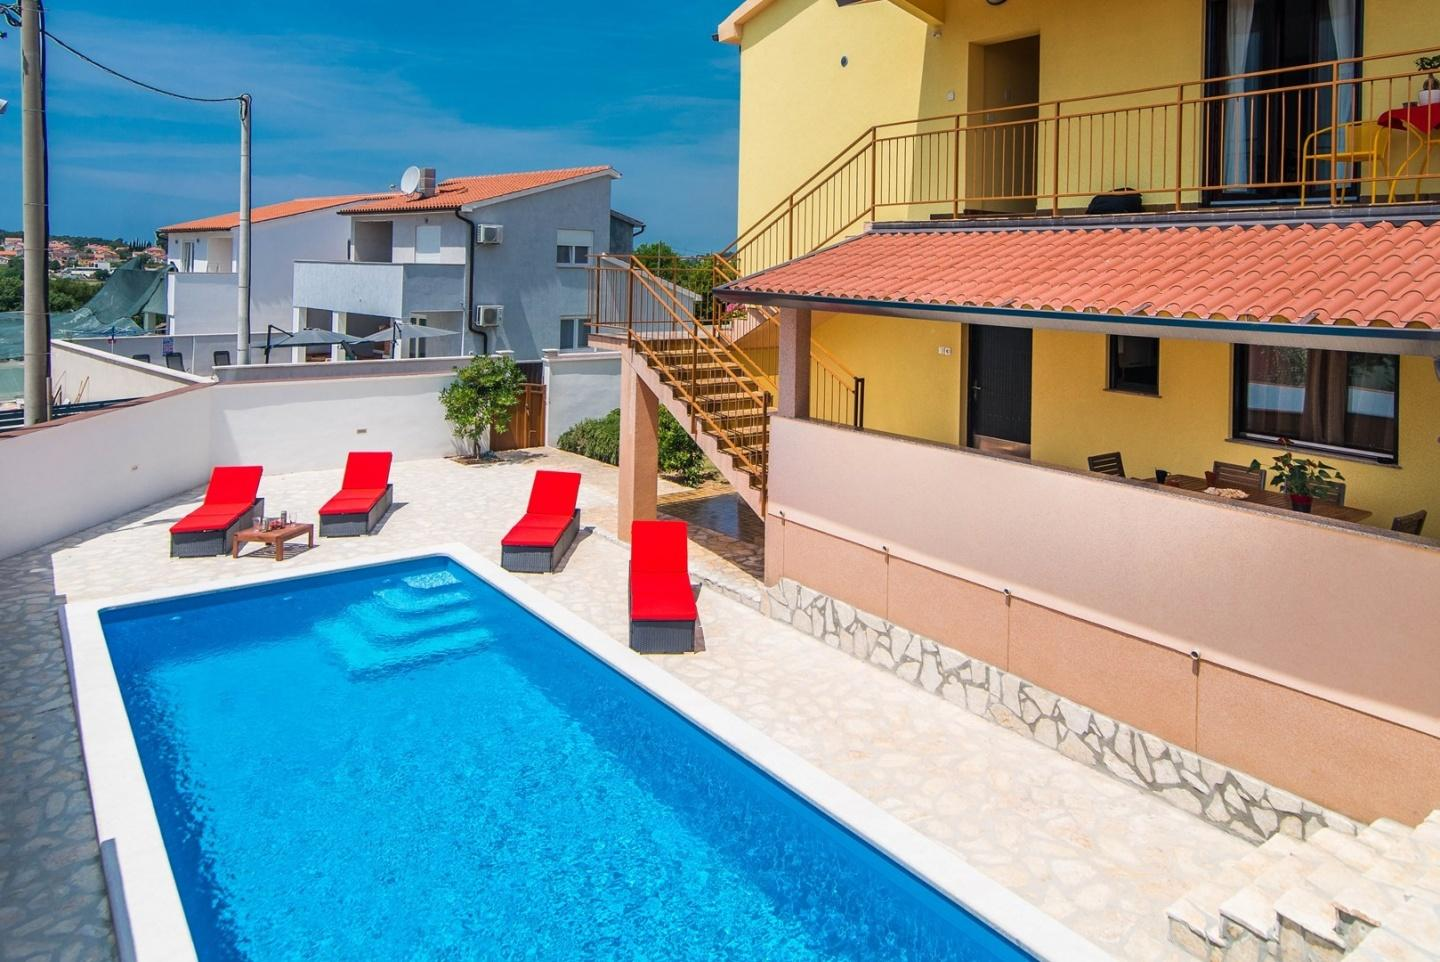 Spacious villa in Pula with Parking, Internet, ... Slide-3